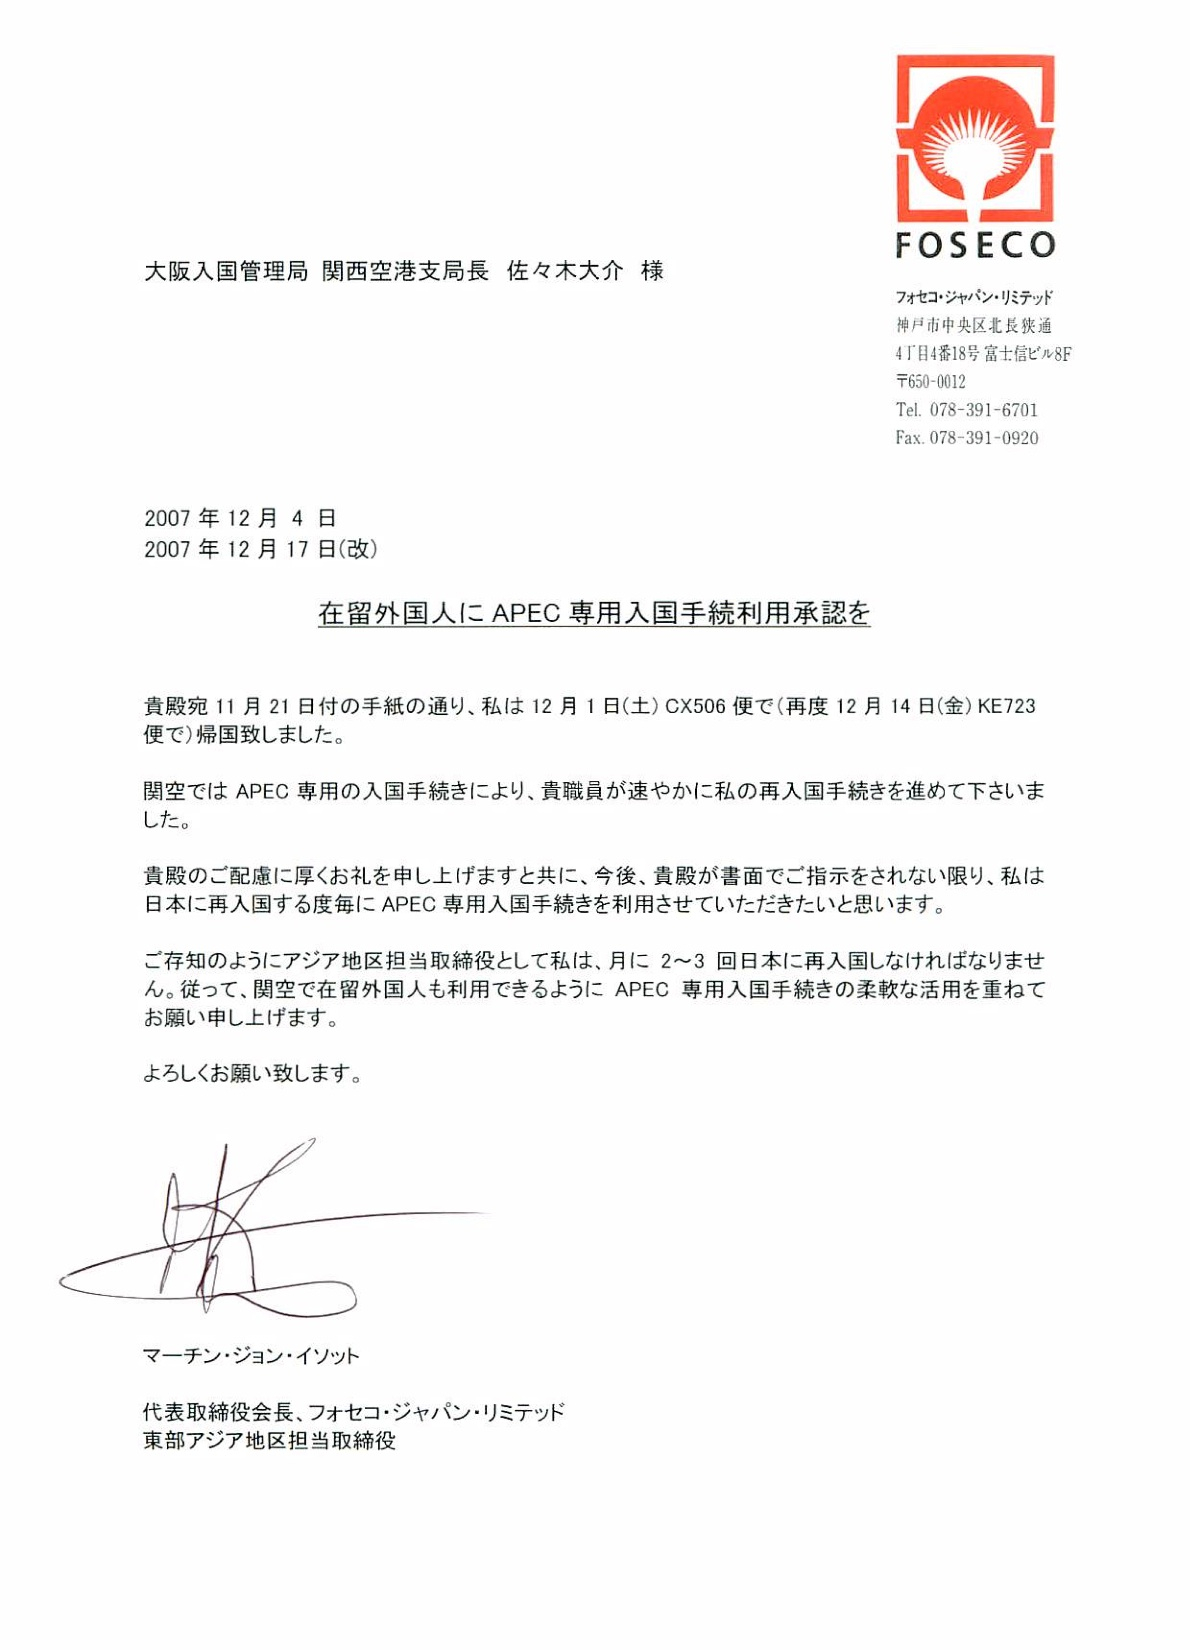 Immigration Recommendation Letter Template - How to Write Good Letter Re Mendation formmigration Writing